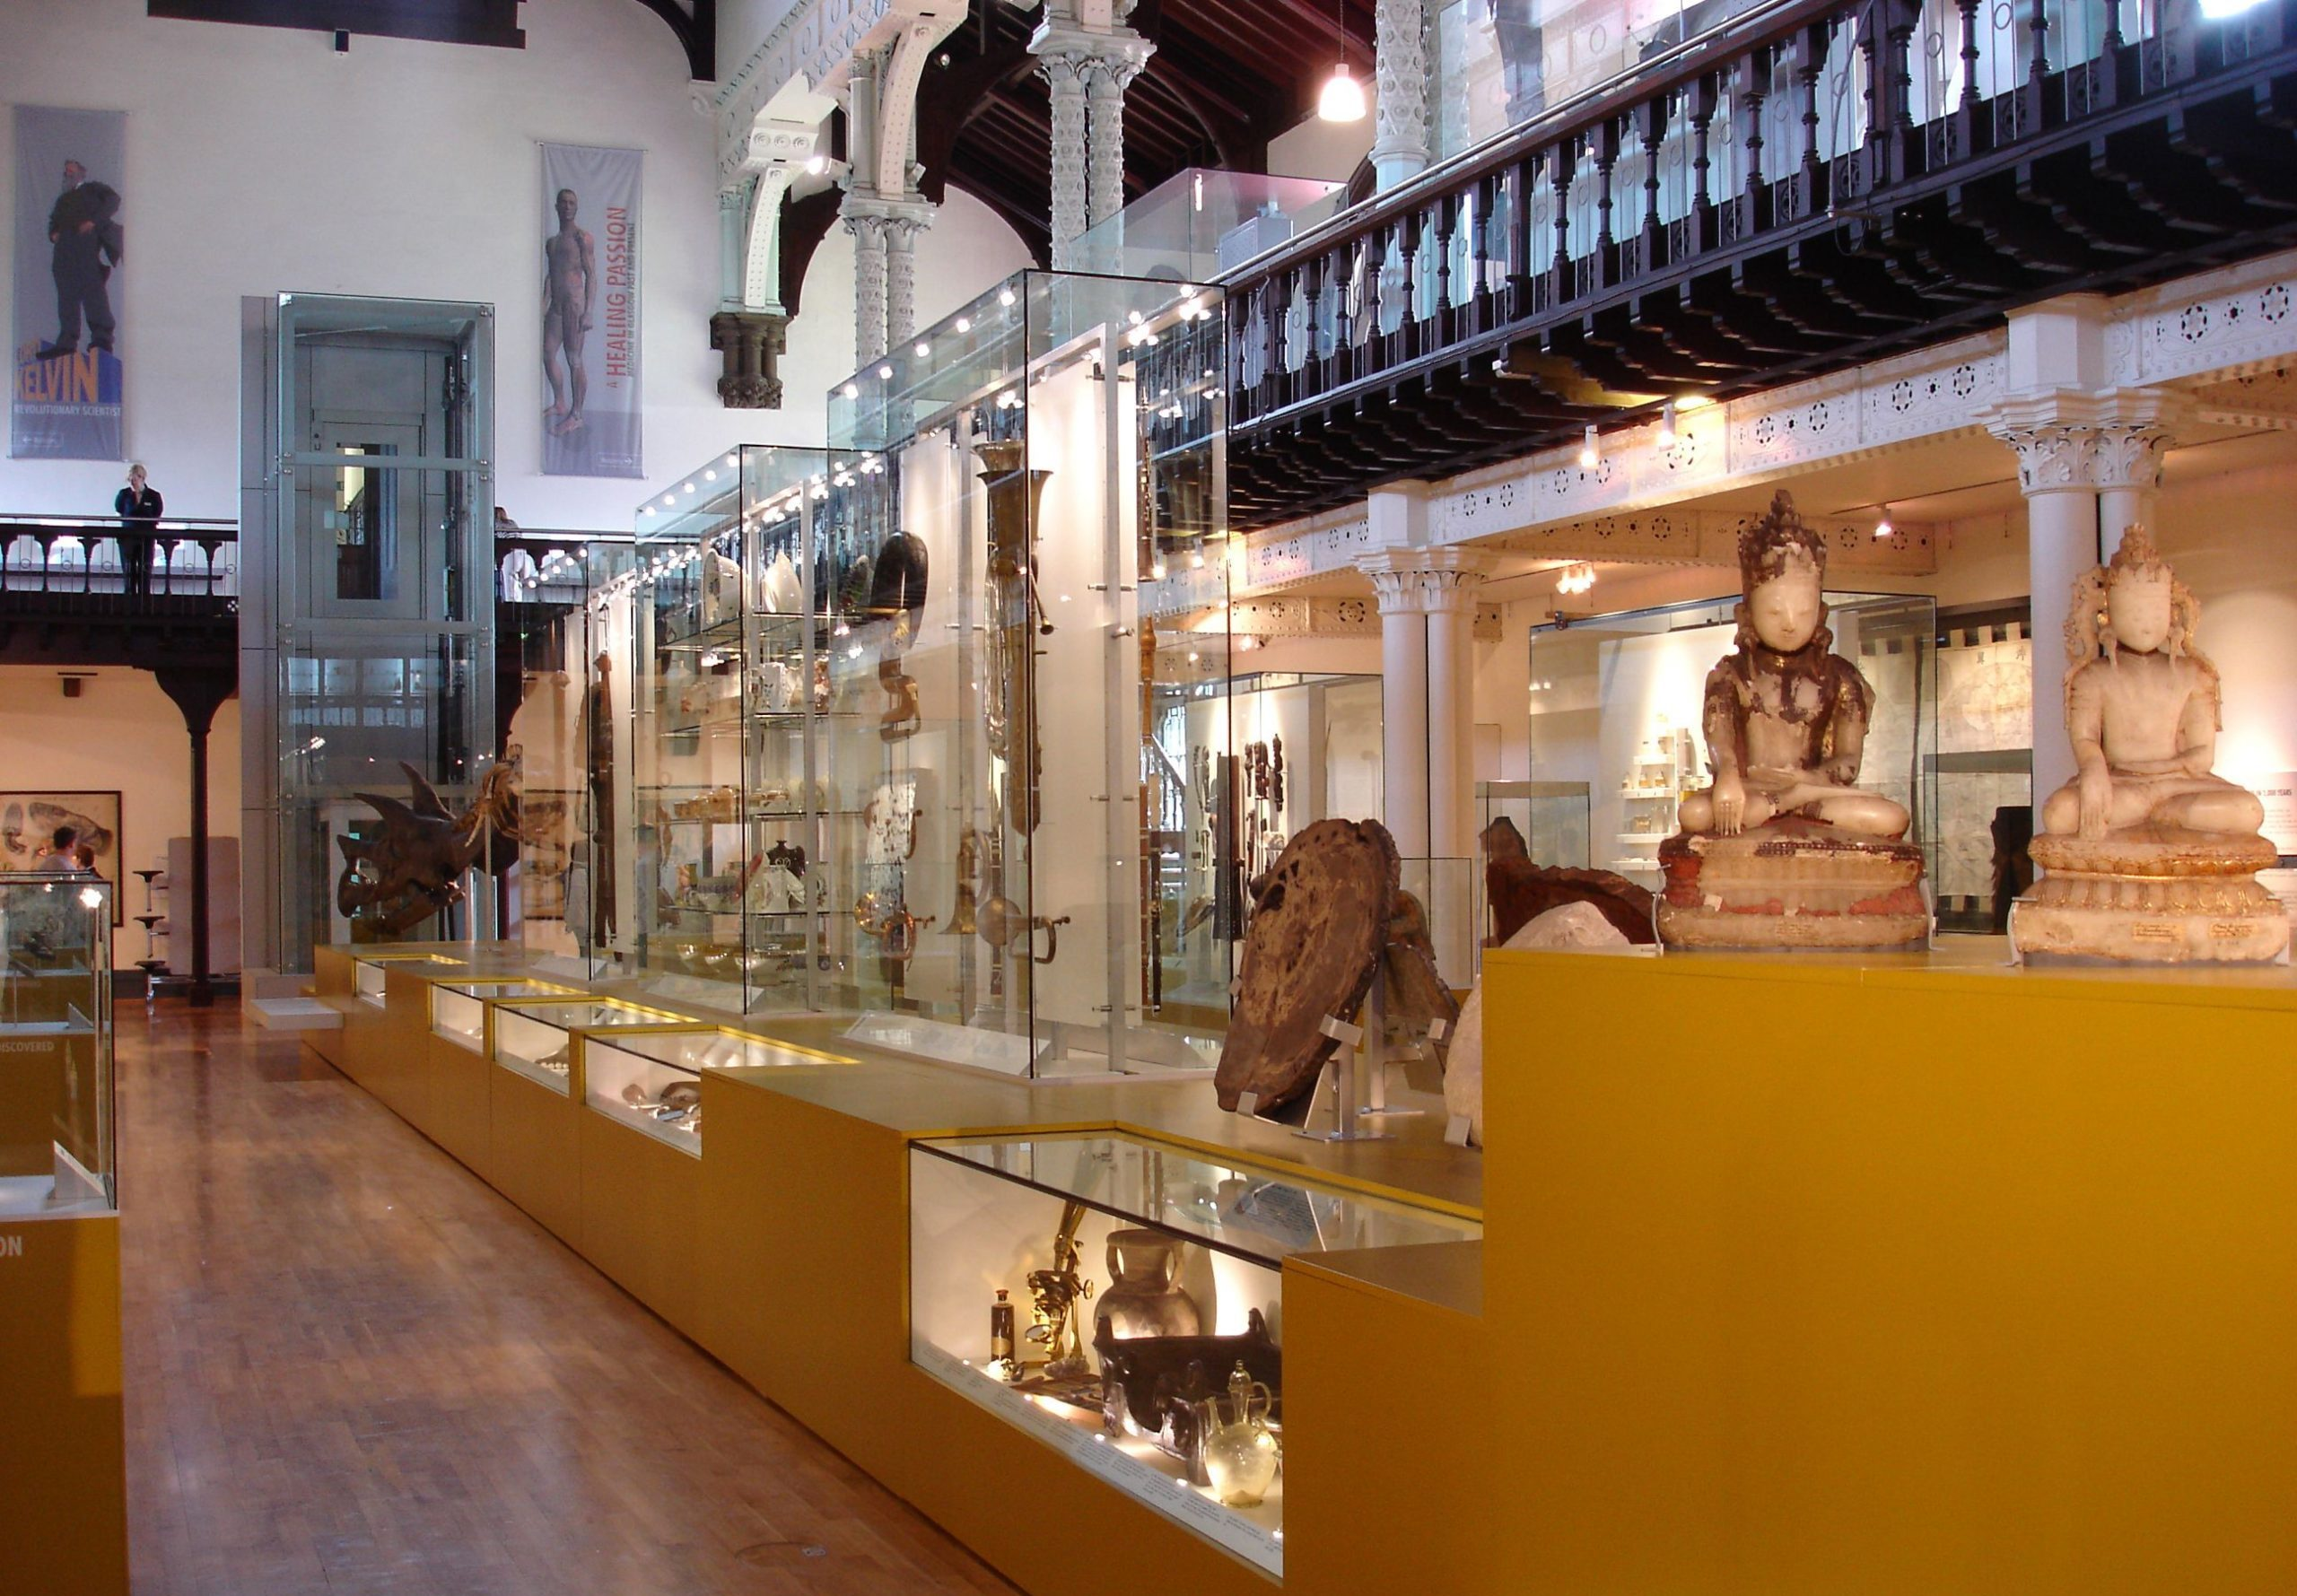 University museums such as the Hunterian in Glasgow are eligible to apply